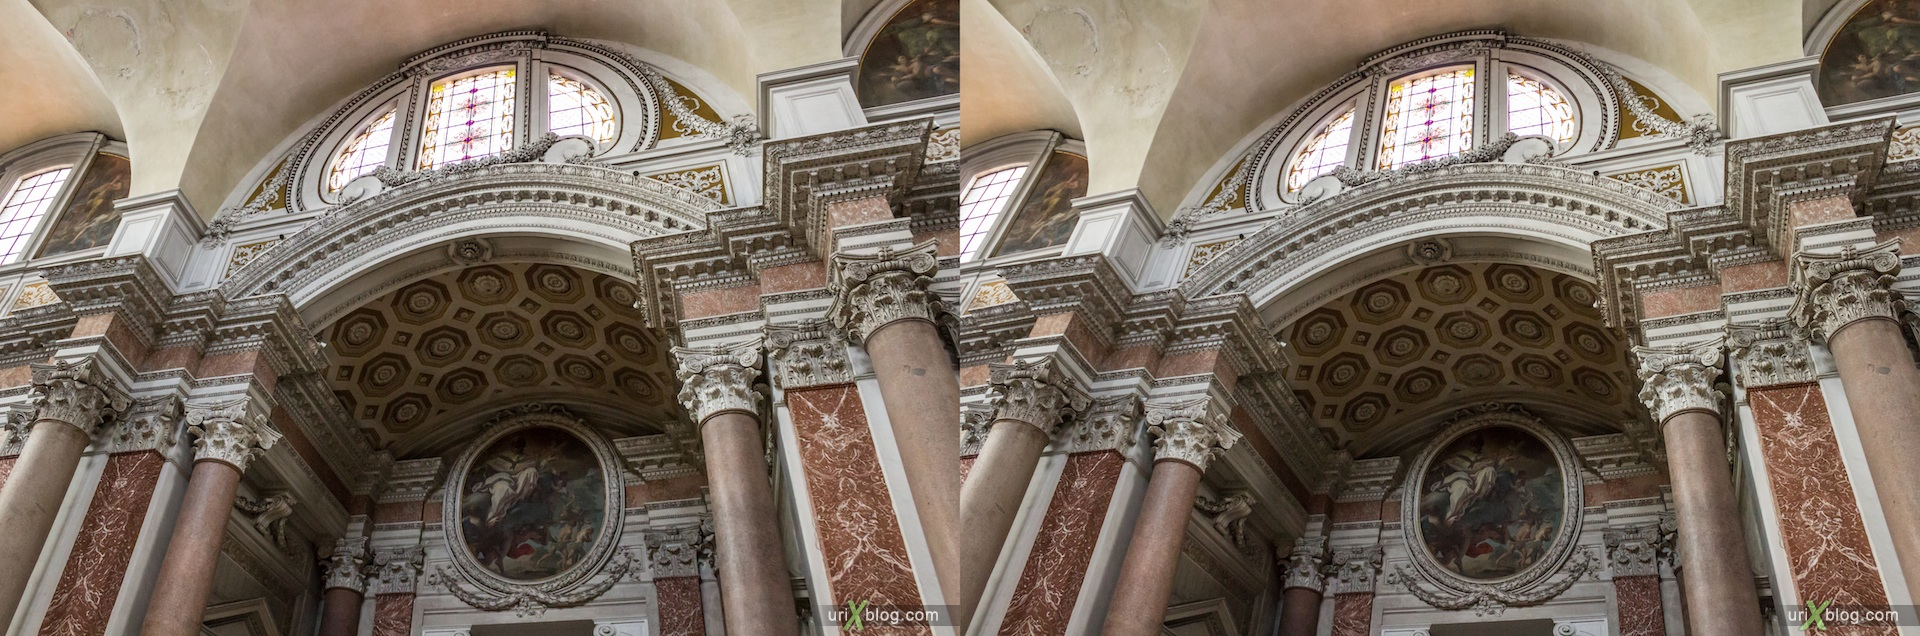 2012, Santa Maria degli Angeli church, Rome, Italy, cathedral, monastery, Christianity, Catholicism, 3D, stereo pair, cross-eyed, crossview, cross view stereo pair